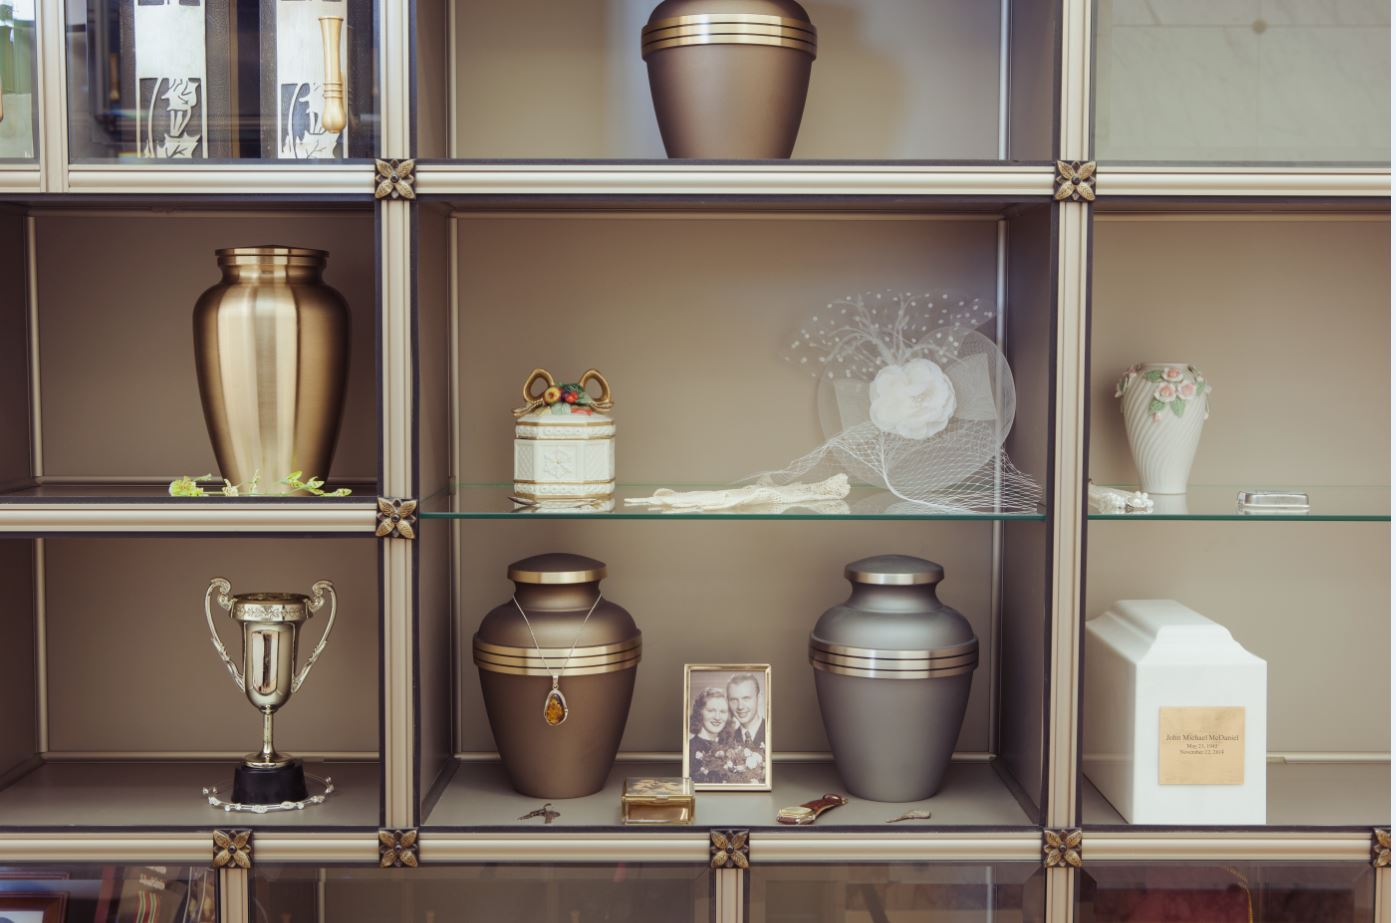 Niches for urns and keepsakes